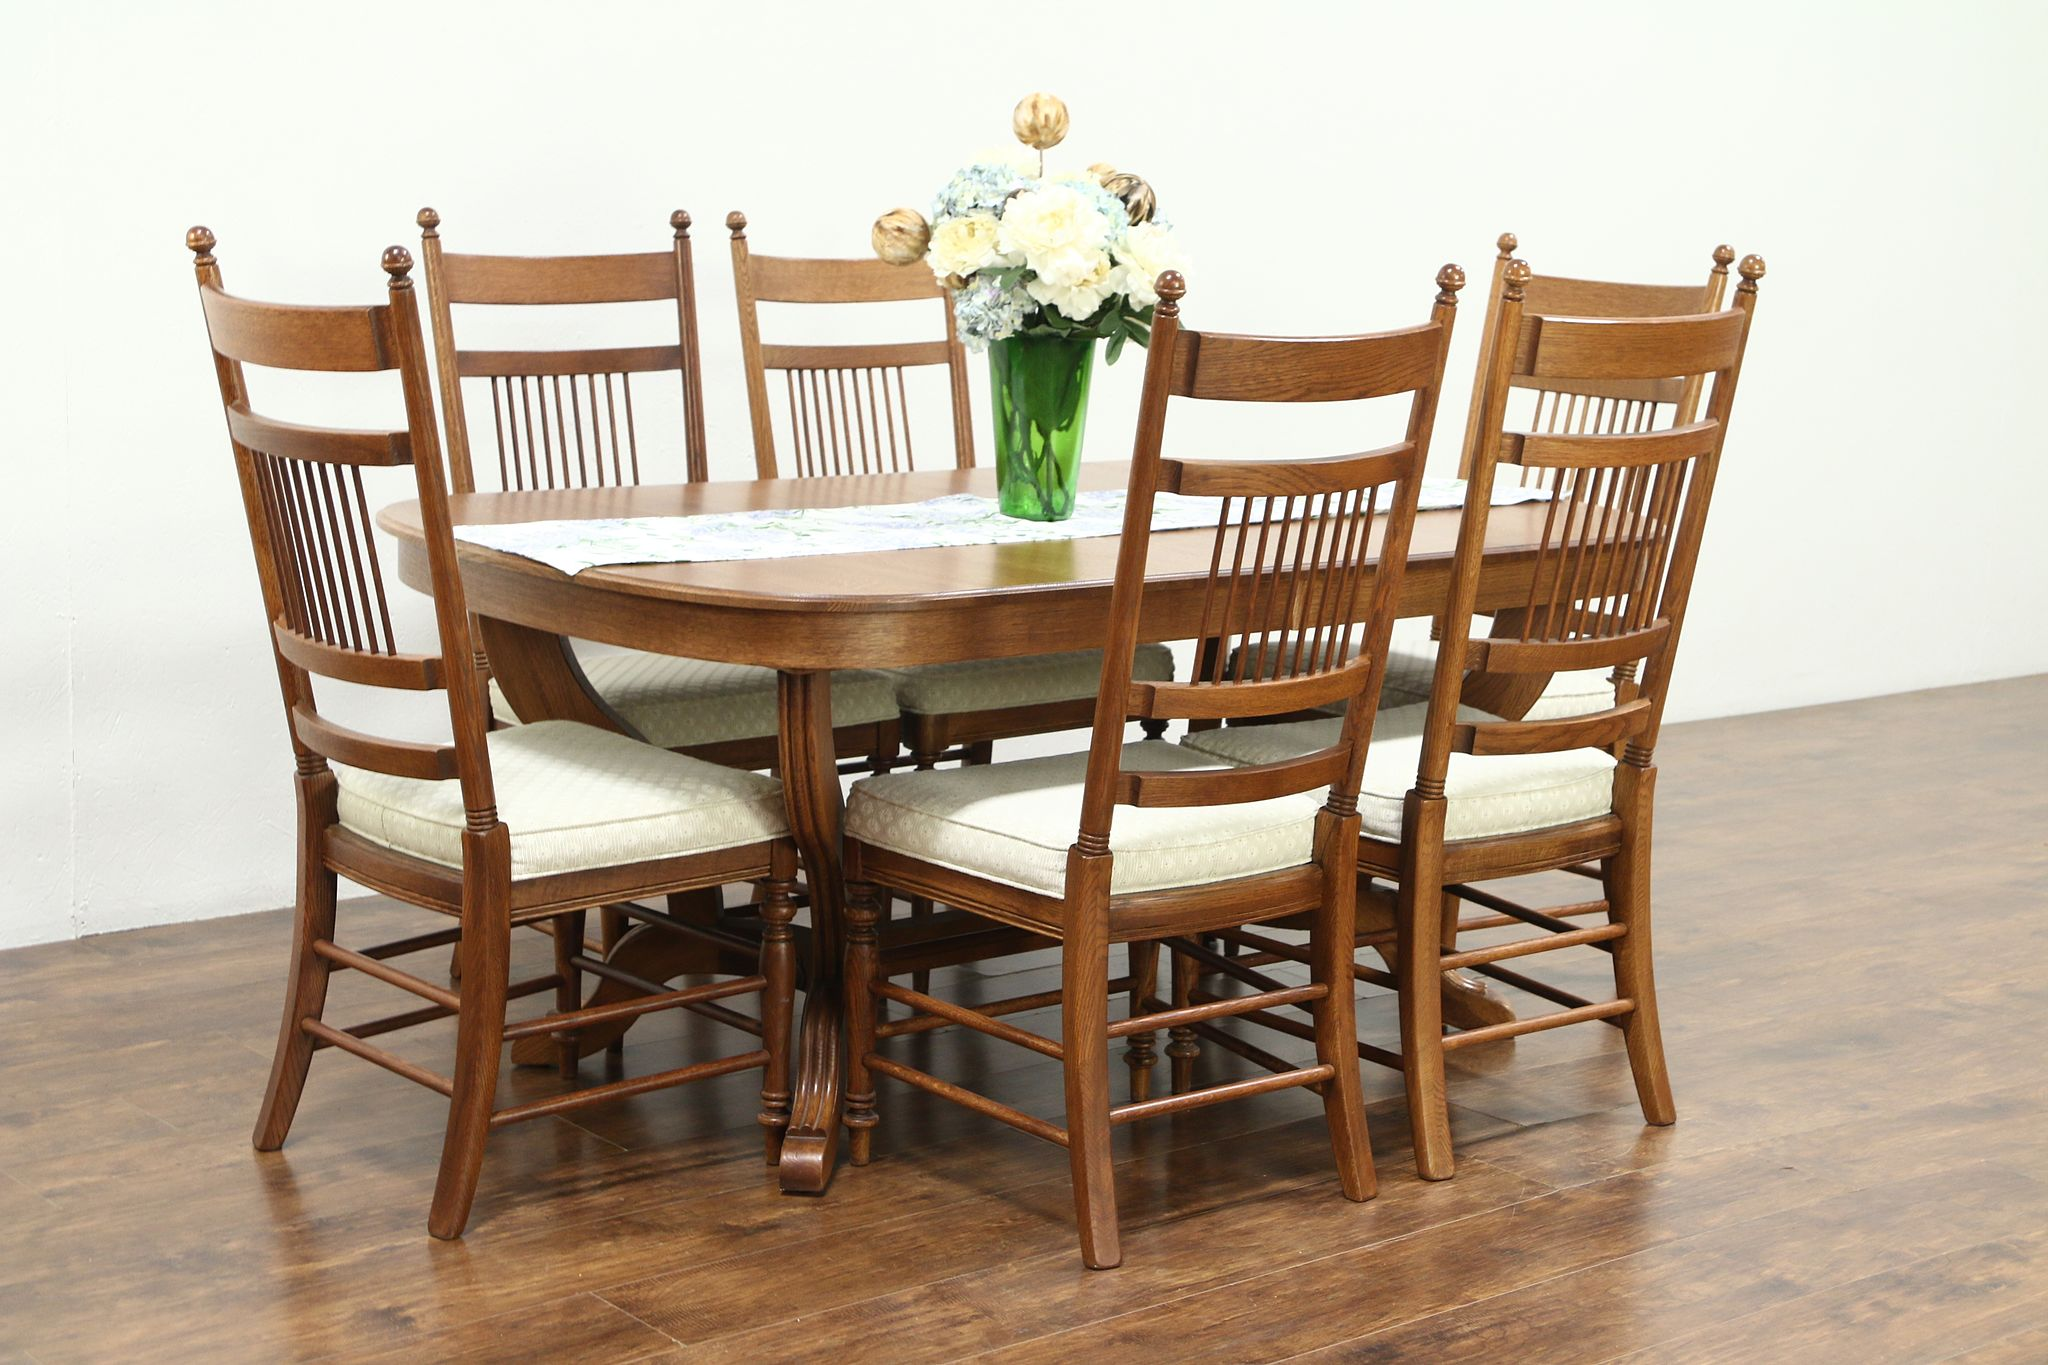 Sold Oak Vintage Dining Set Table 4 Leaves 6 Chairs Signed Richardson Bros Harp Gallery Antiques Furniture